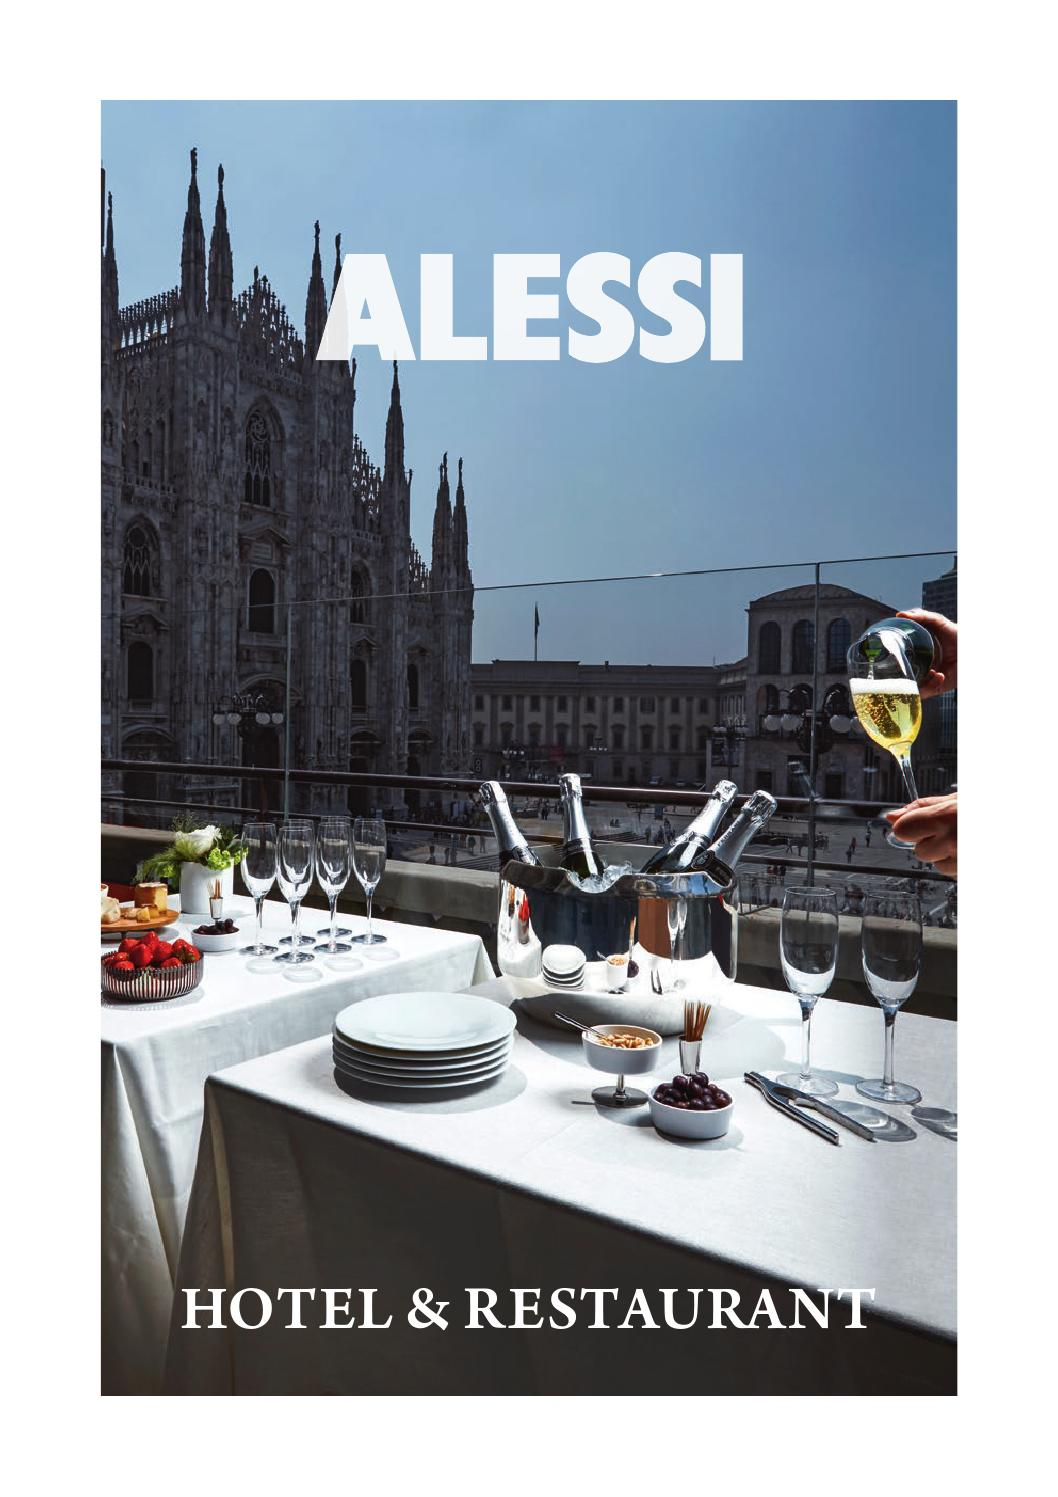 Alessi hotel restaurant by alessi s p a issuu for Alessi catalogo